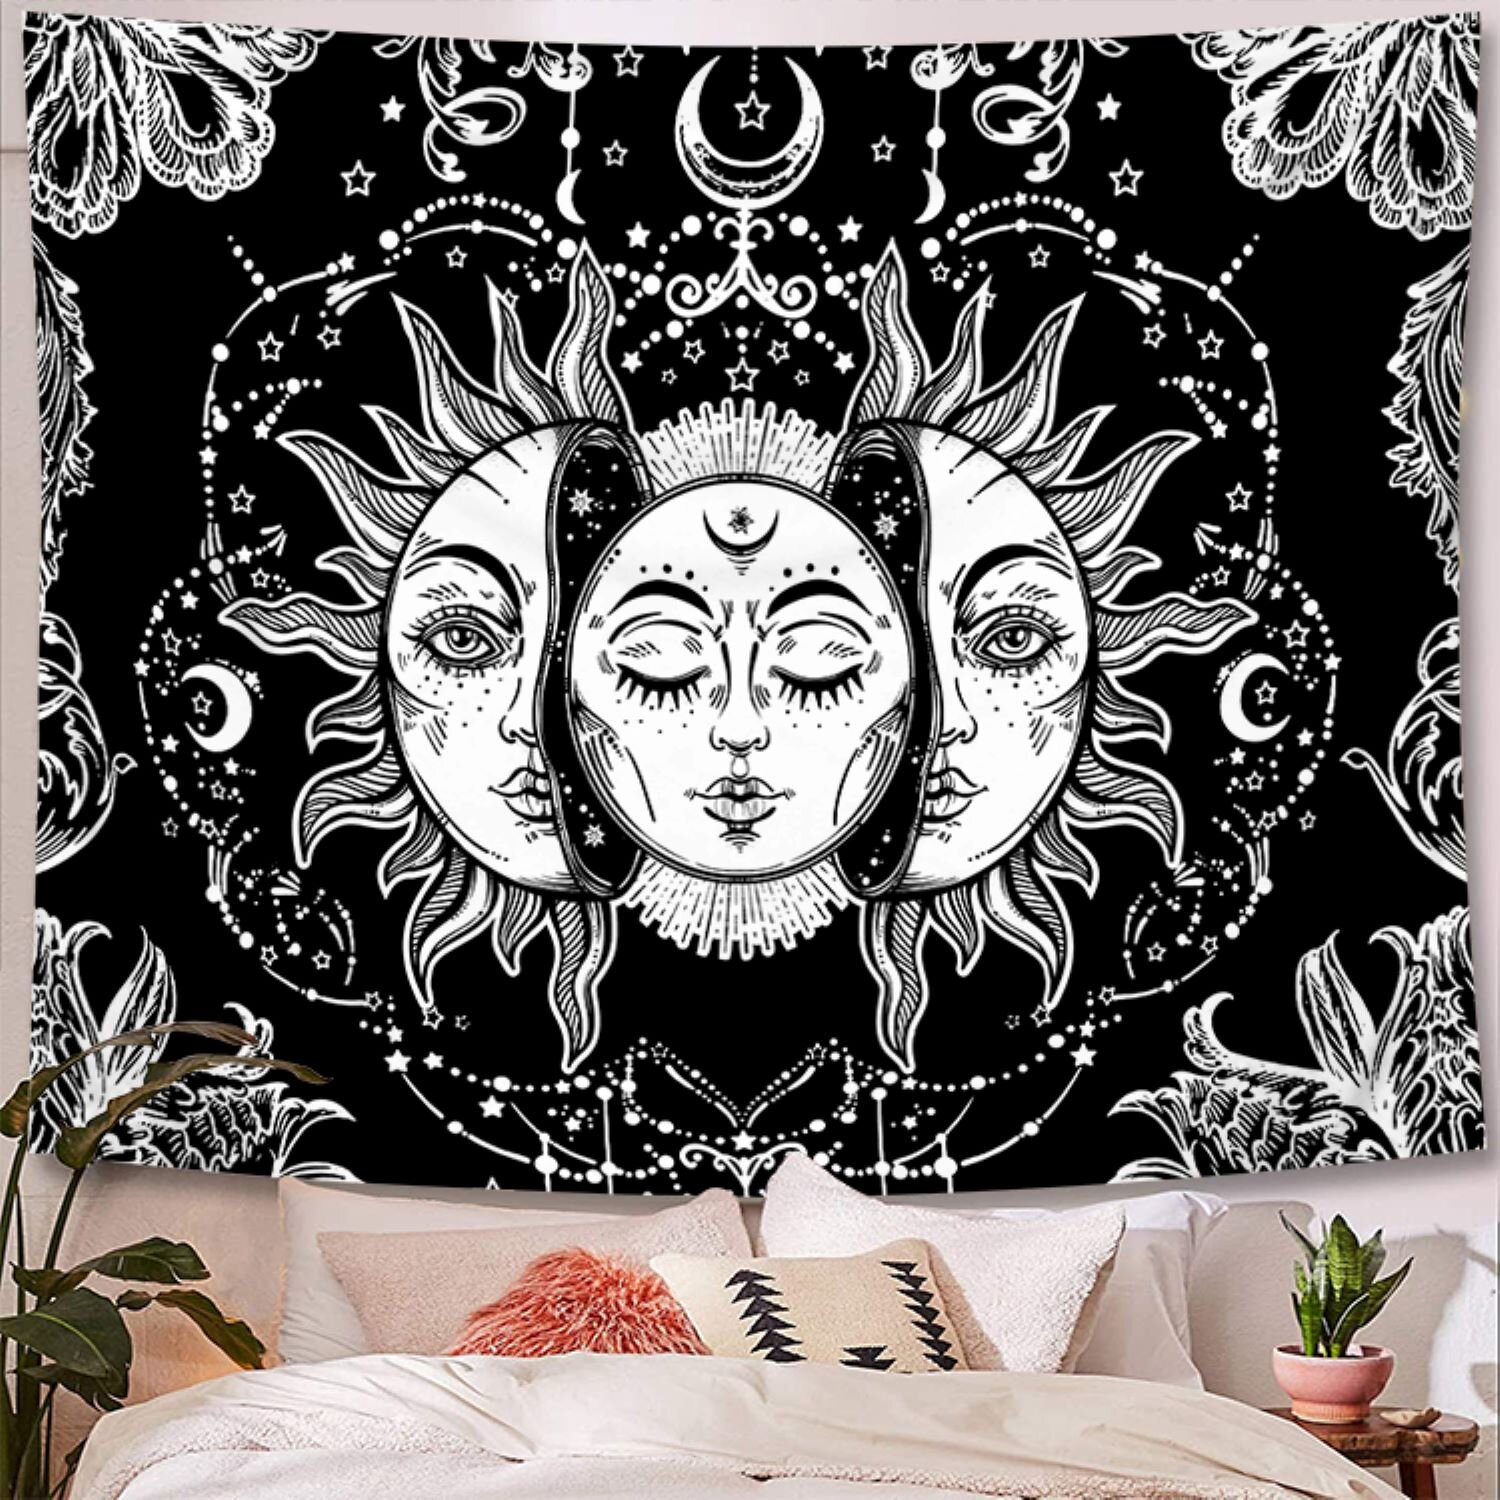 Psychedelic Sun Polyester Tapestry With Hanging Accessories Included Pertaining To Recent Blended Fabric Clancy Wool And Cotton Wall Hangings With Hanging Accessories Included (View 13 of 20)